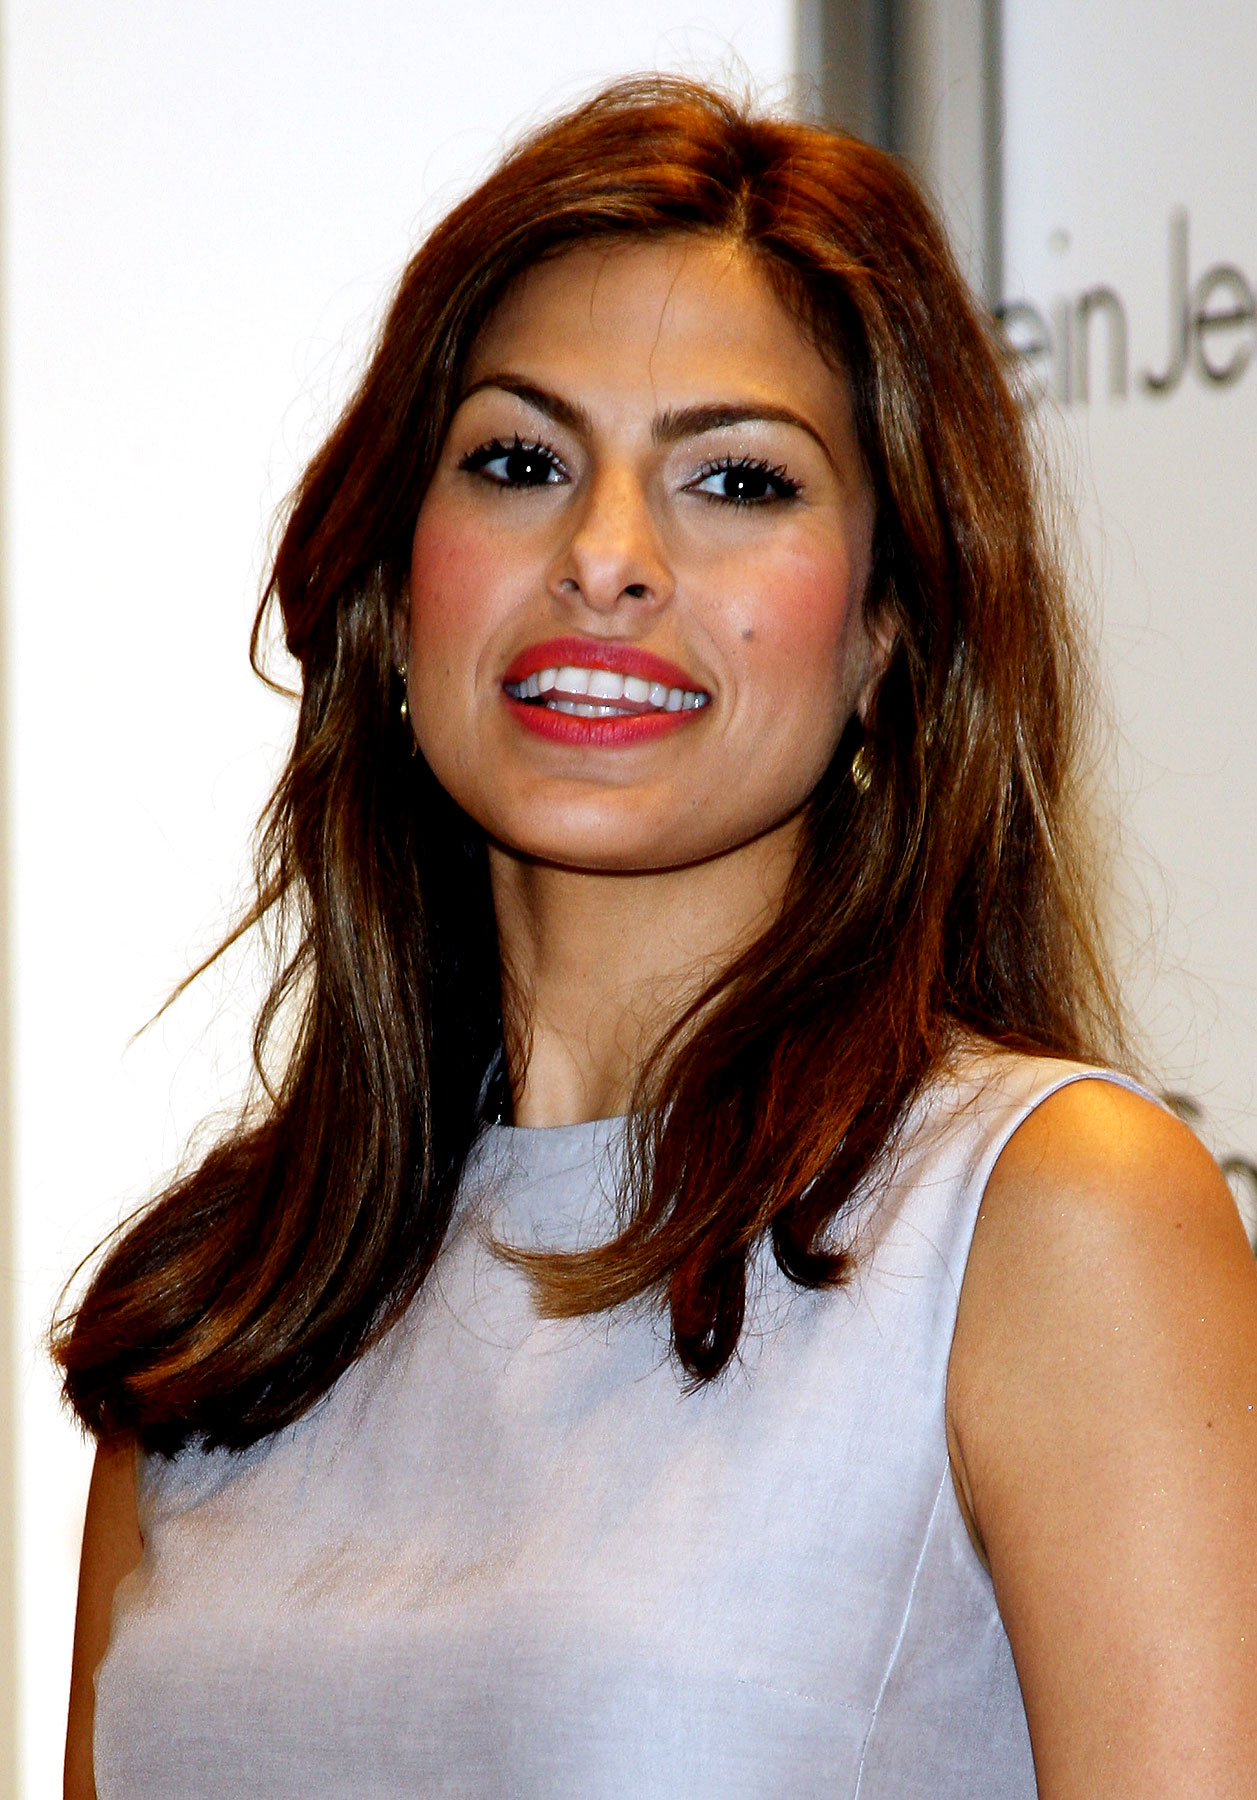 PHOTO GALLERY: Eva Mendes Has Great Jeans